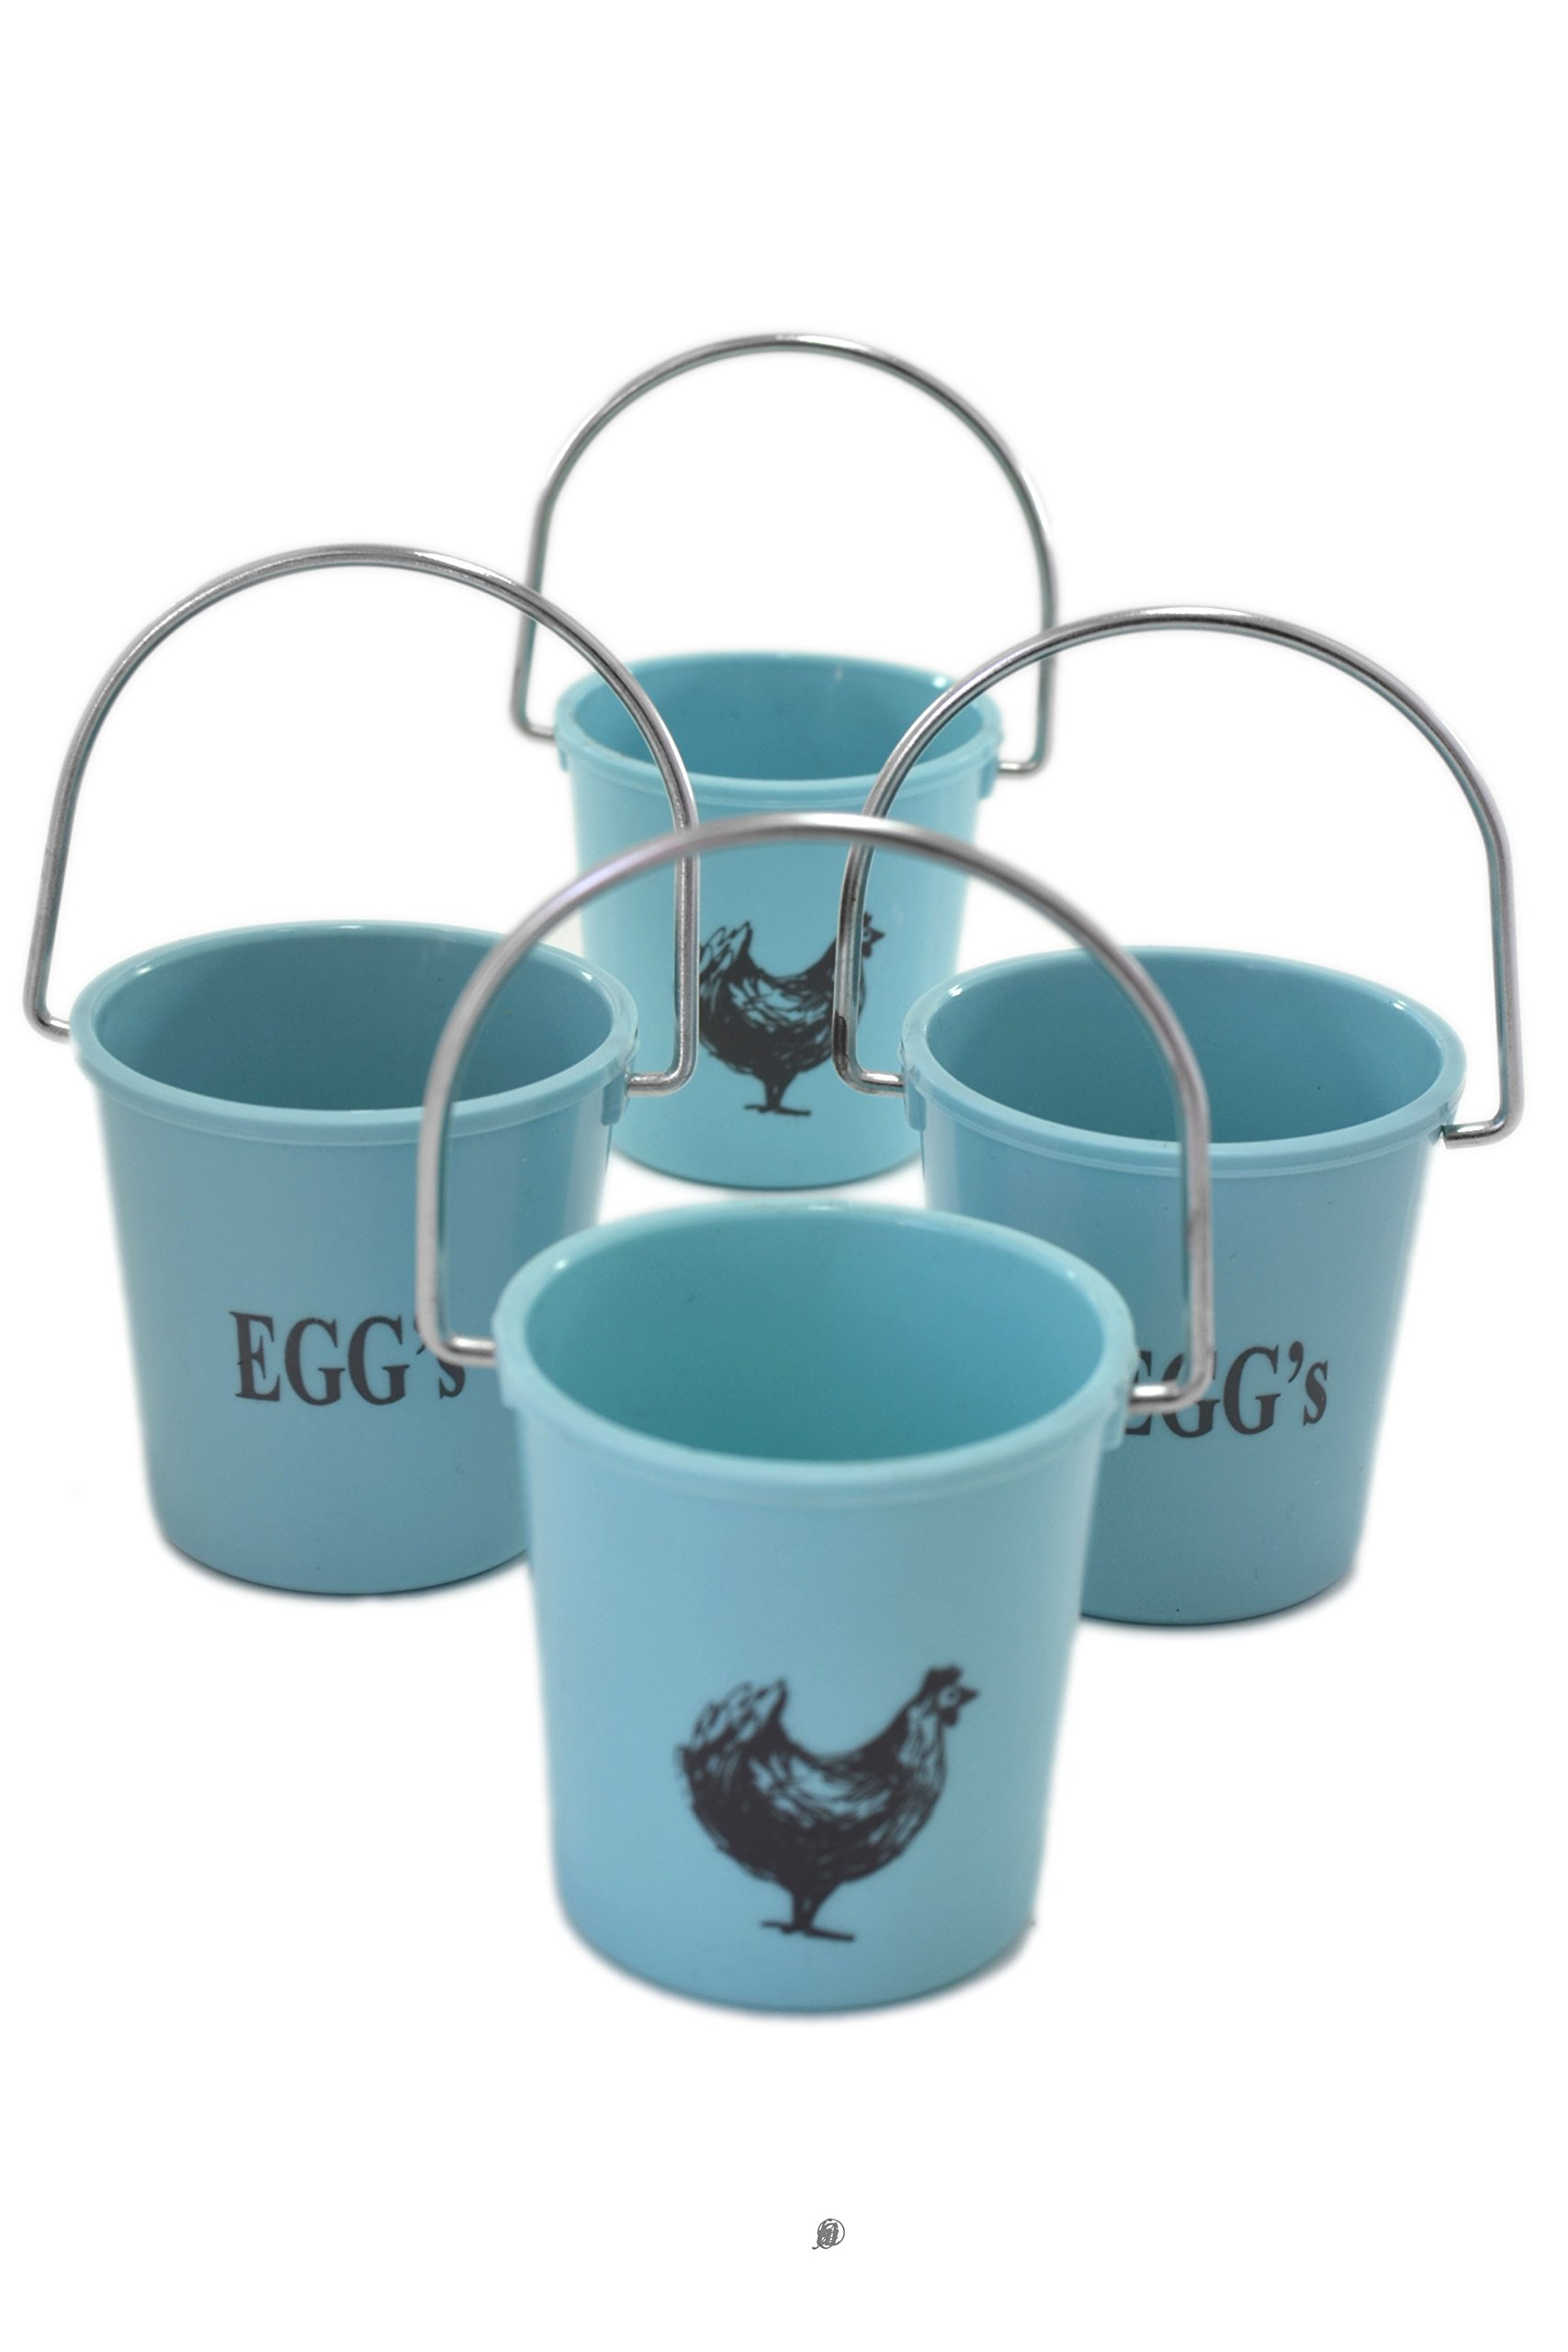 Set 4 Blue Pail Chicken Design Cup Soft Boiled Egg Holder Stands with handle